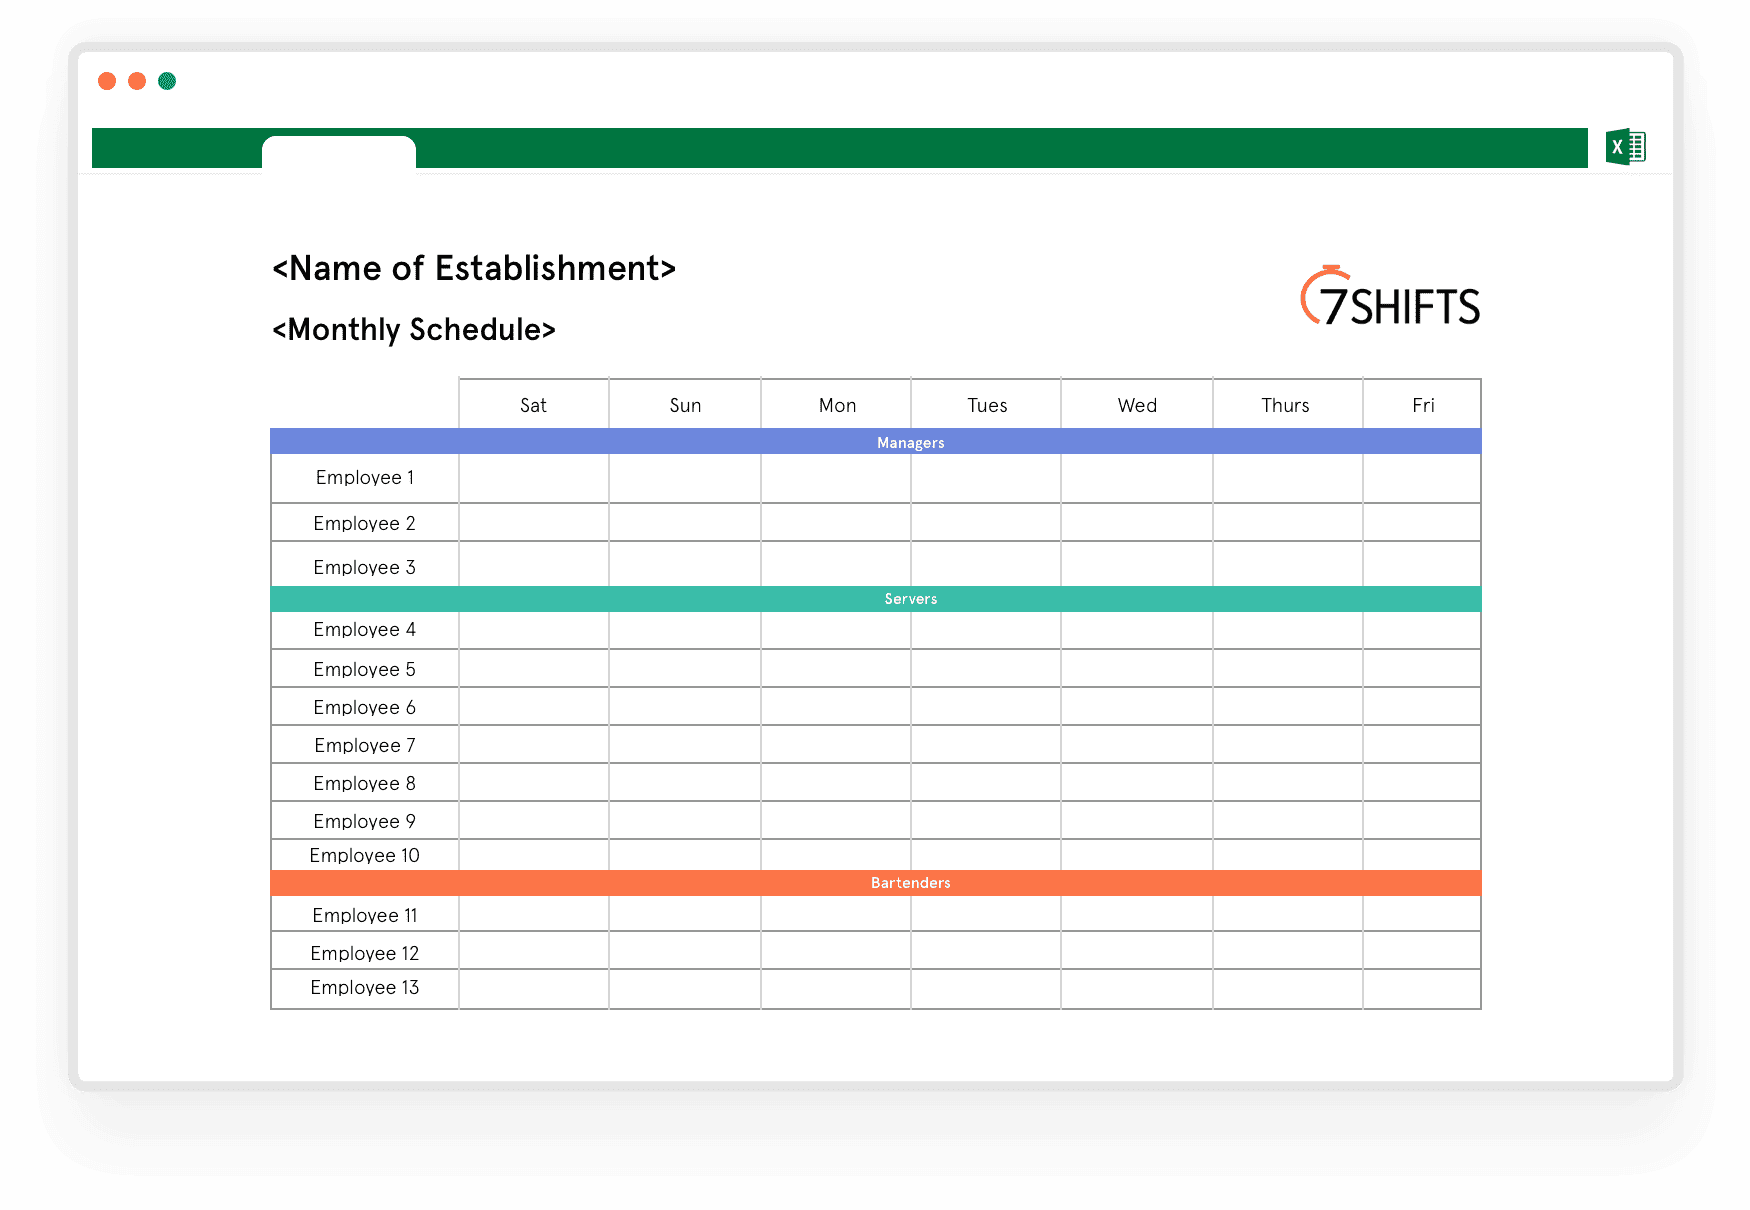 Free employee scheduling excel spreadsheet template download this shift schedule template and start organizing your employee shifts on excel. Download Free Monthly Work Schedule Template 7shifts 7shifts